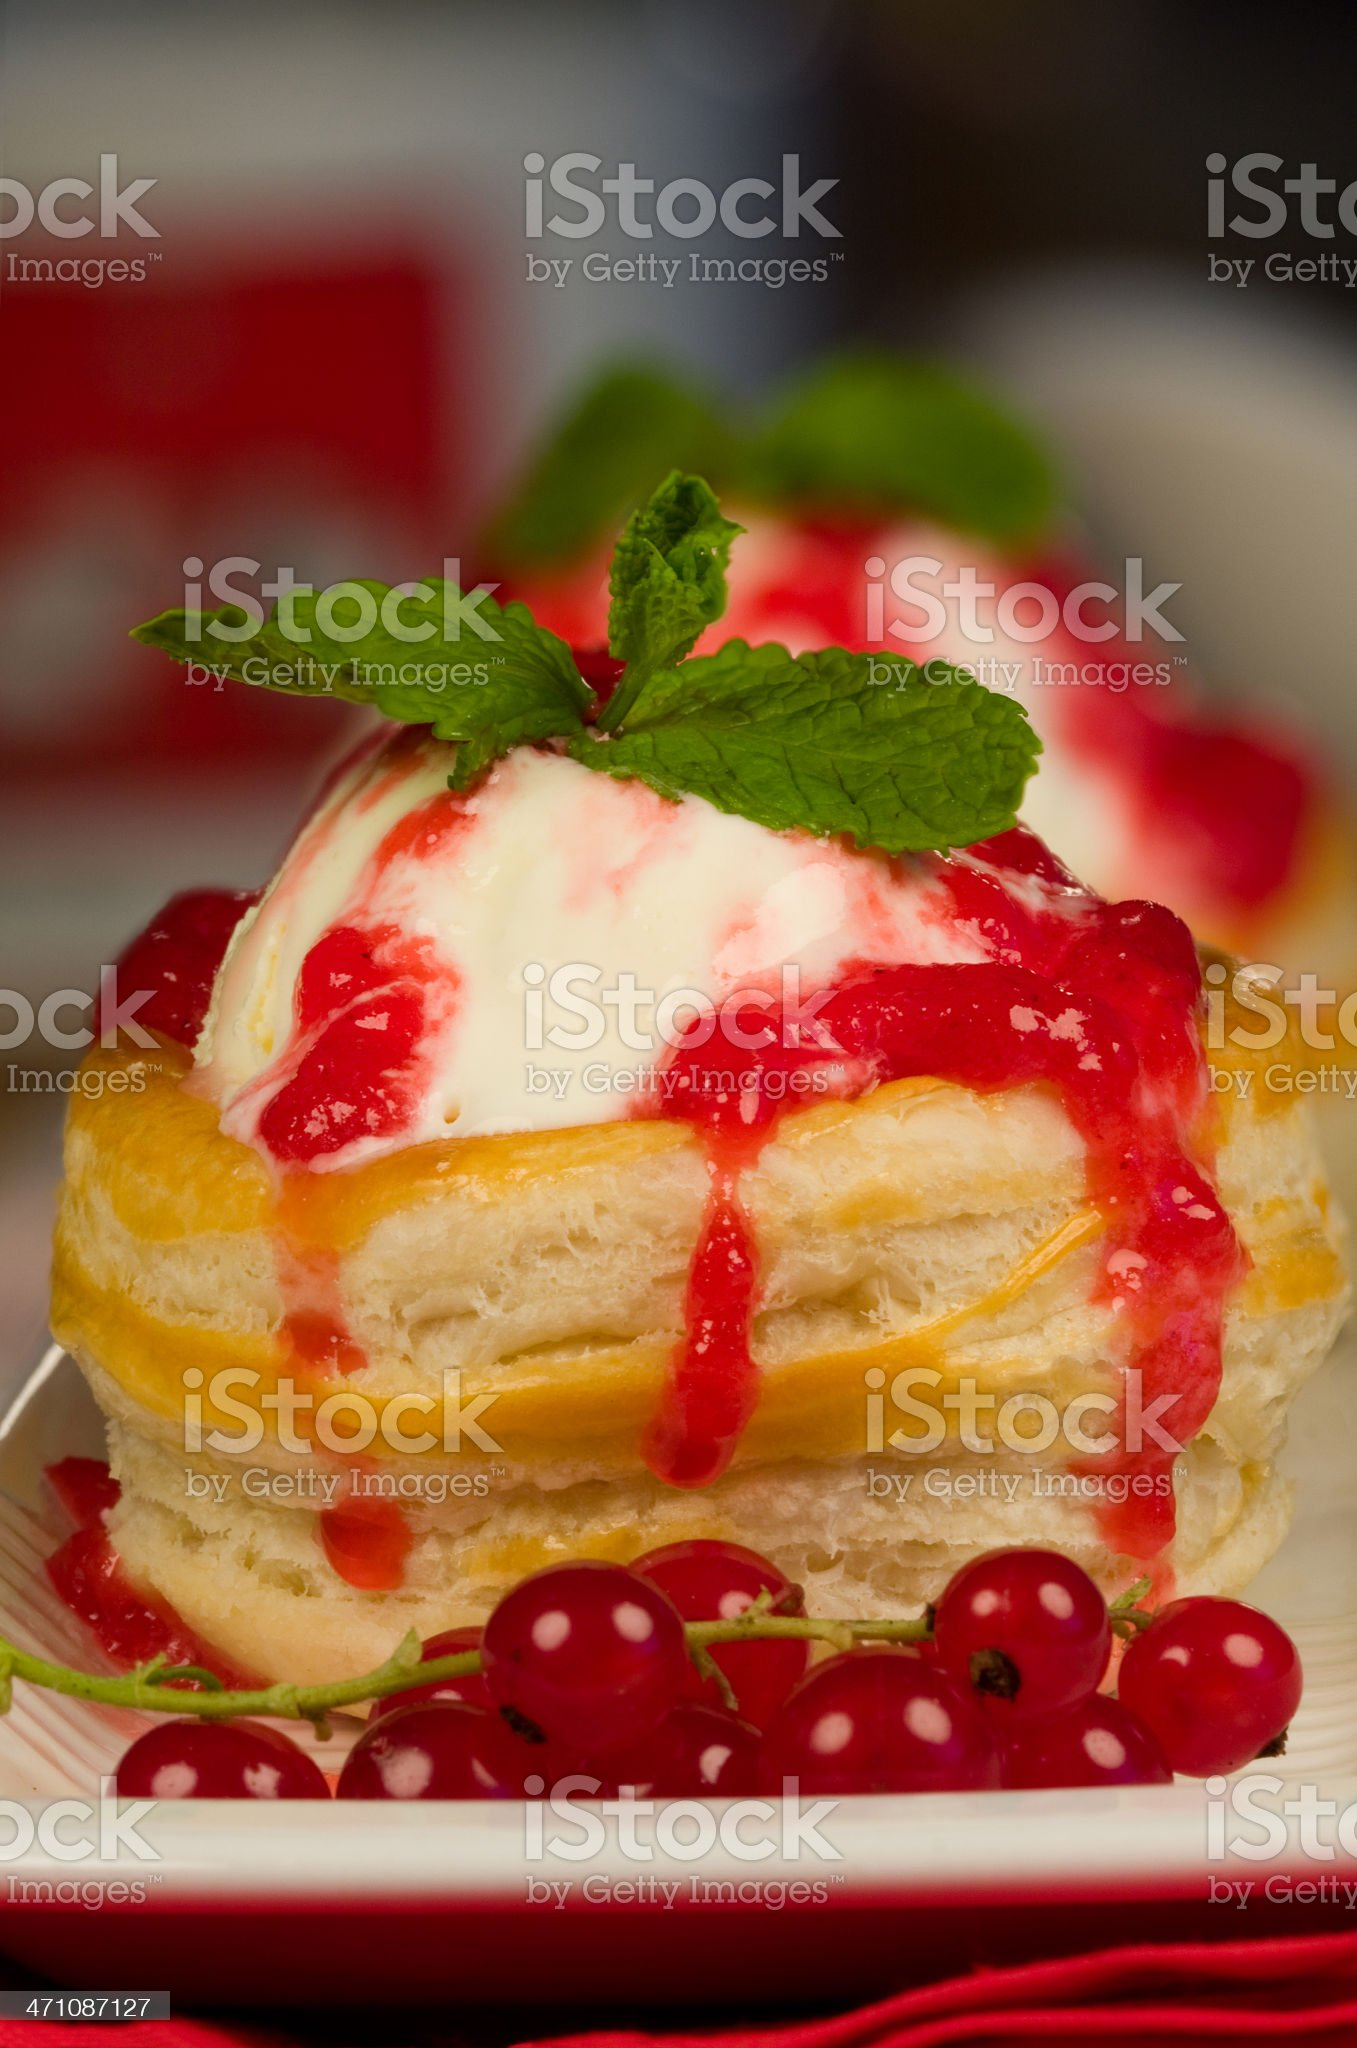 Ice cream dessert and red currants dressing royalty-free stock photo